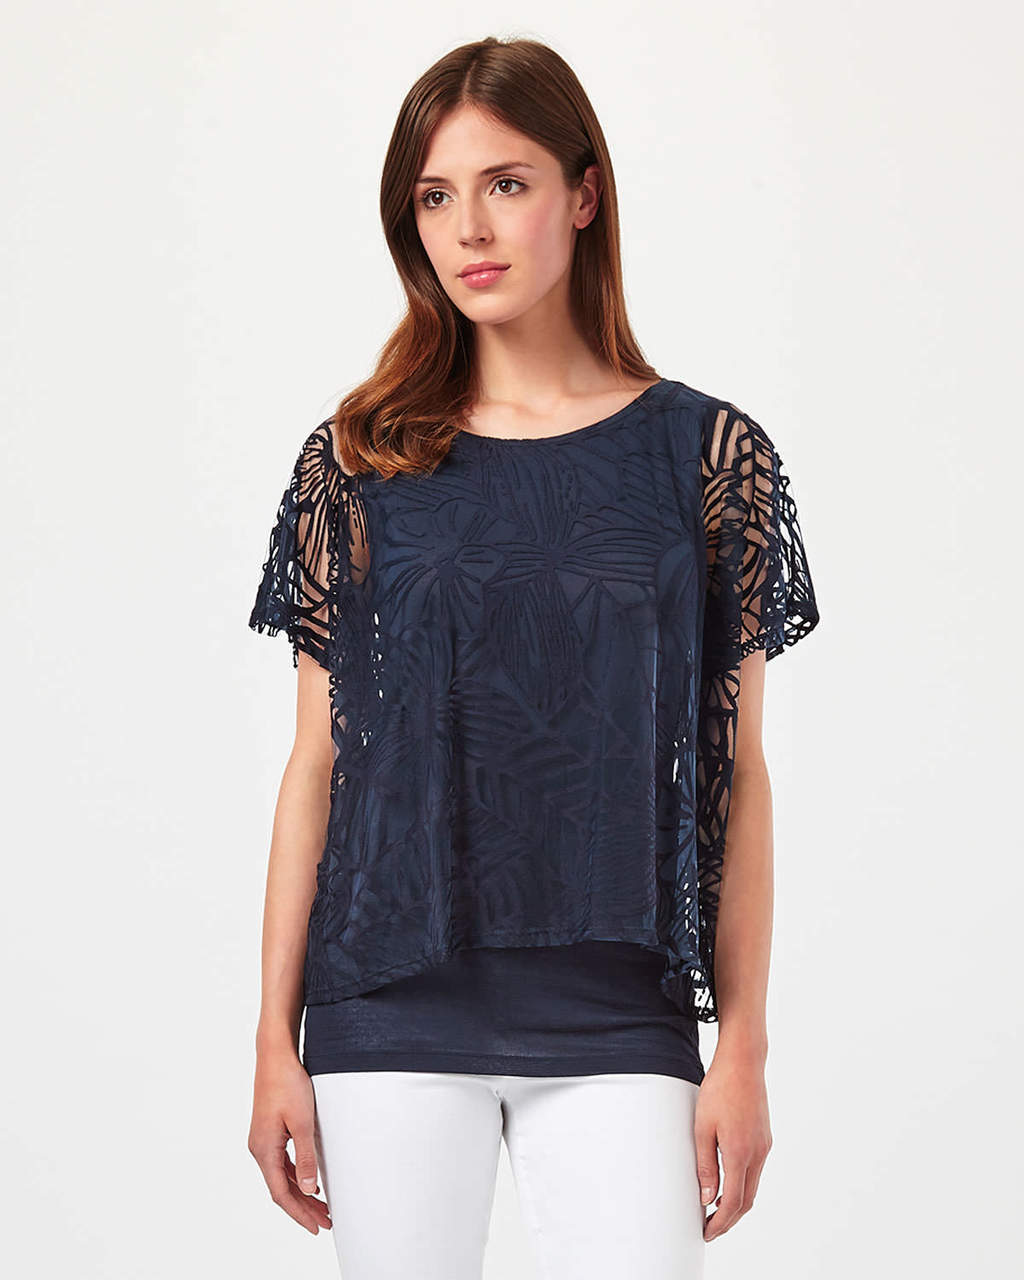 Cecily Dbl Layer Top - neckline: round neck; pattern: plain; predominant colour: navy; occasions: evening; length: standard; style: top; fit: body skimming; sleeve length: short sleeve; sleeve style: standard; texture group: lace; pattern type: fabric; fibres: viscose/rayon - mix; embellishment: lace; shoulder detail: sheer at shoulder; season: s/s 2016; wardrobe: event